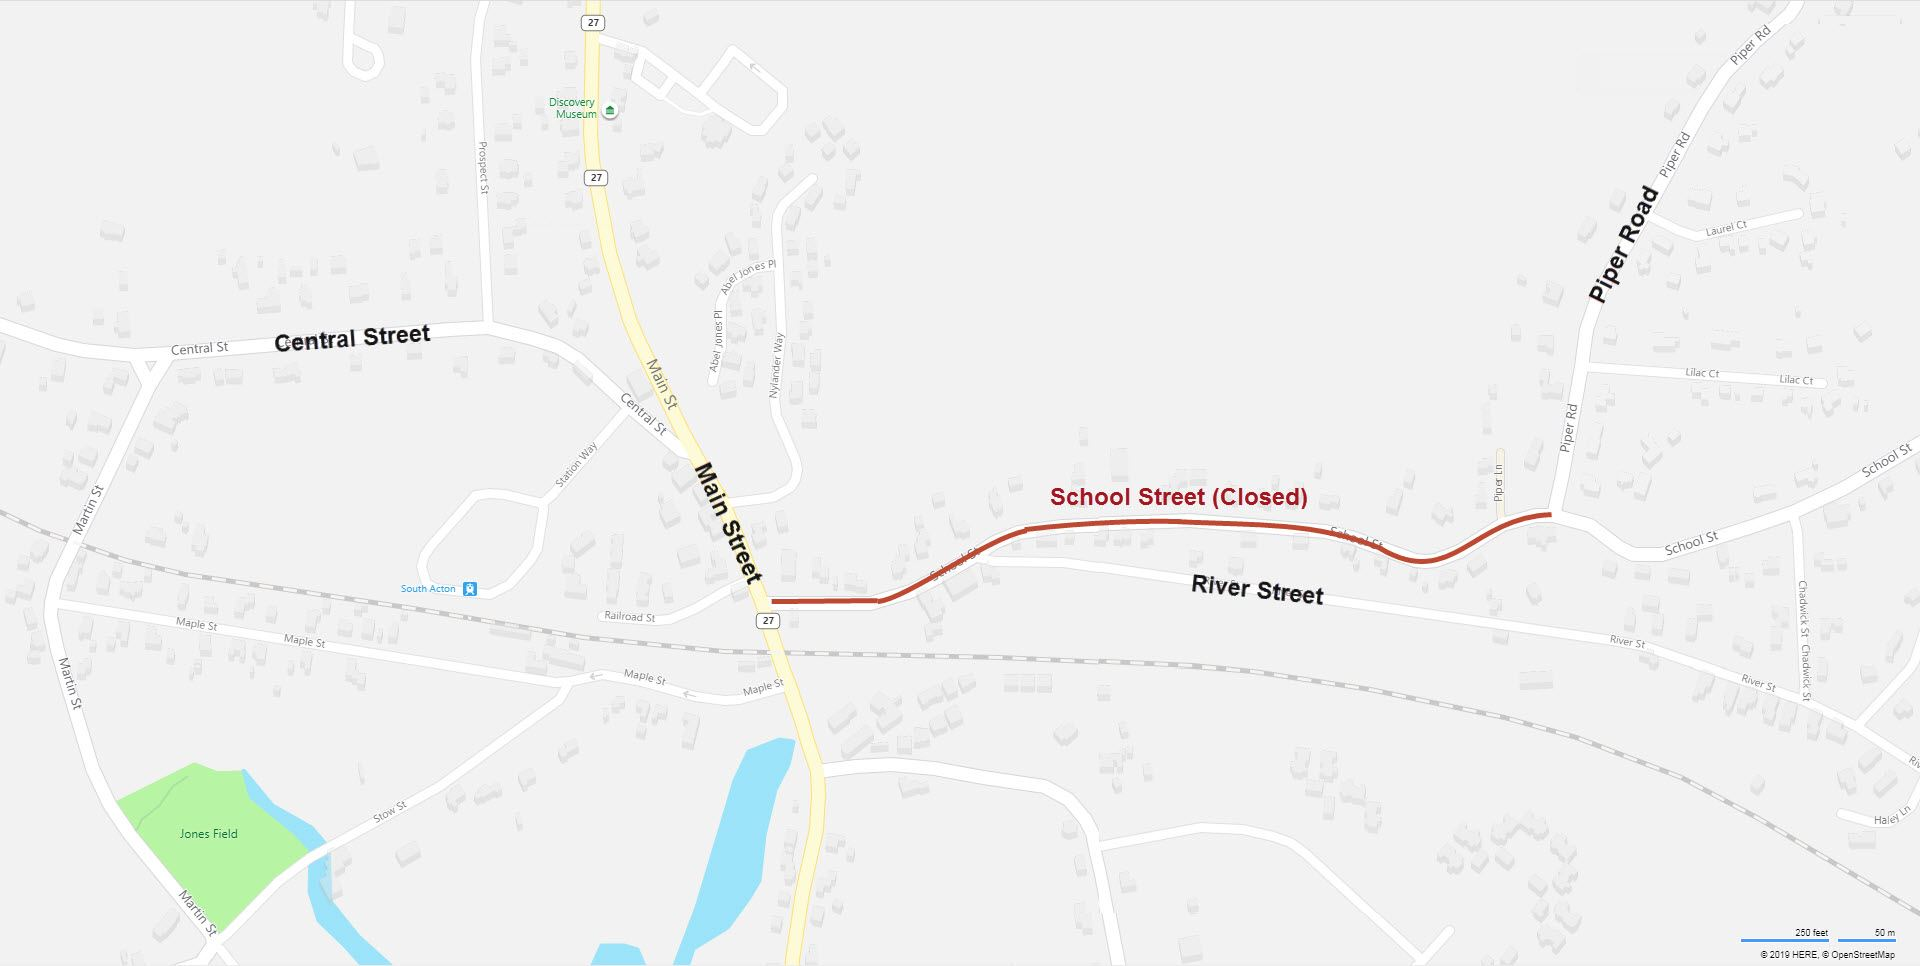 School Street Road Closure